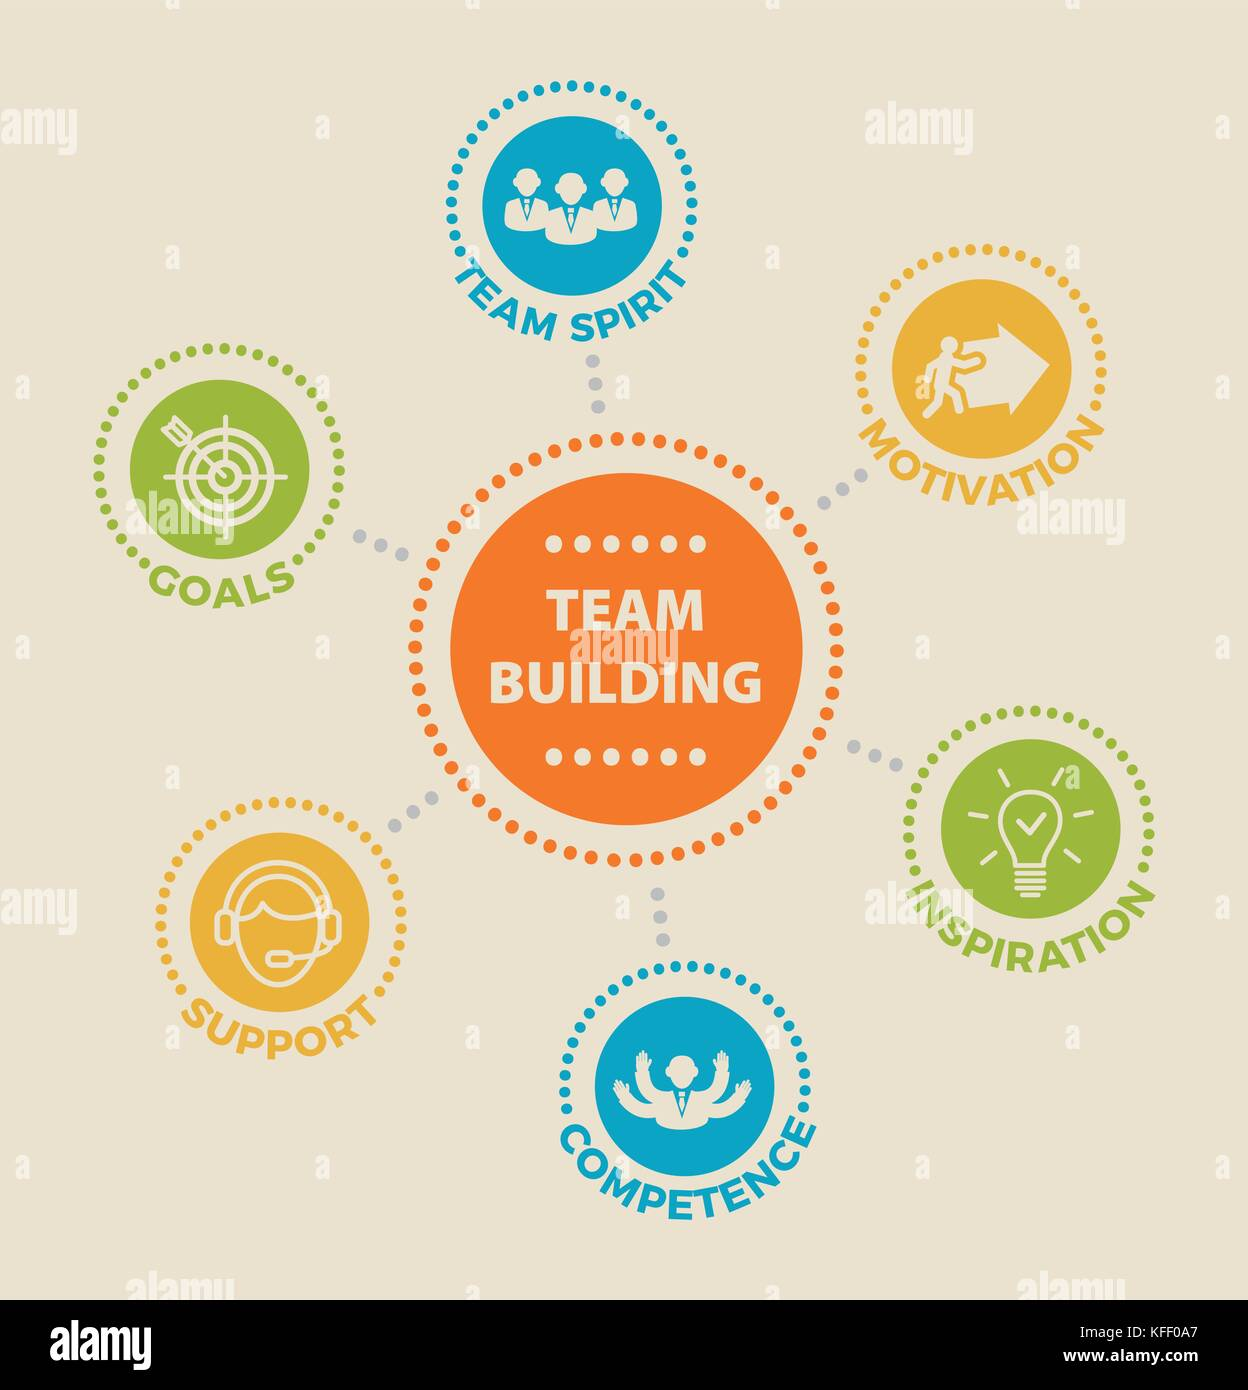 TEAMBUILDING Concept with icons - Stock Image